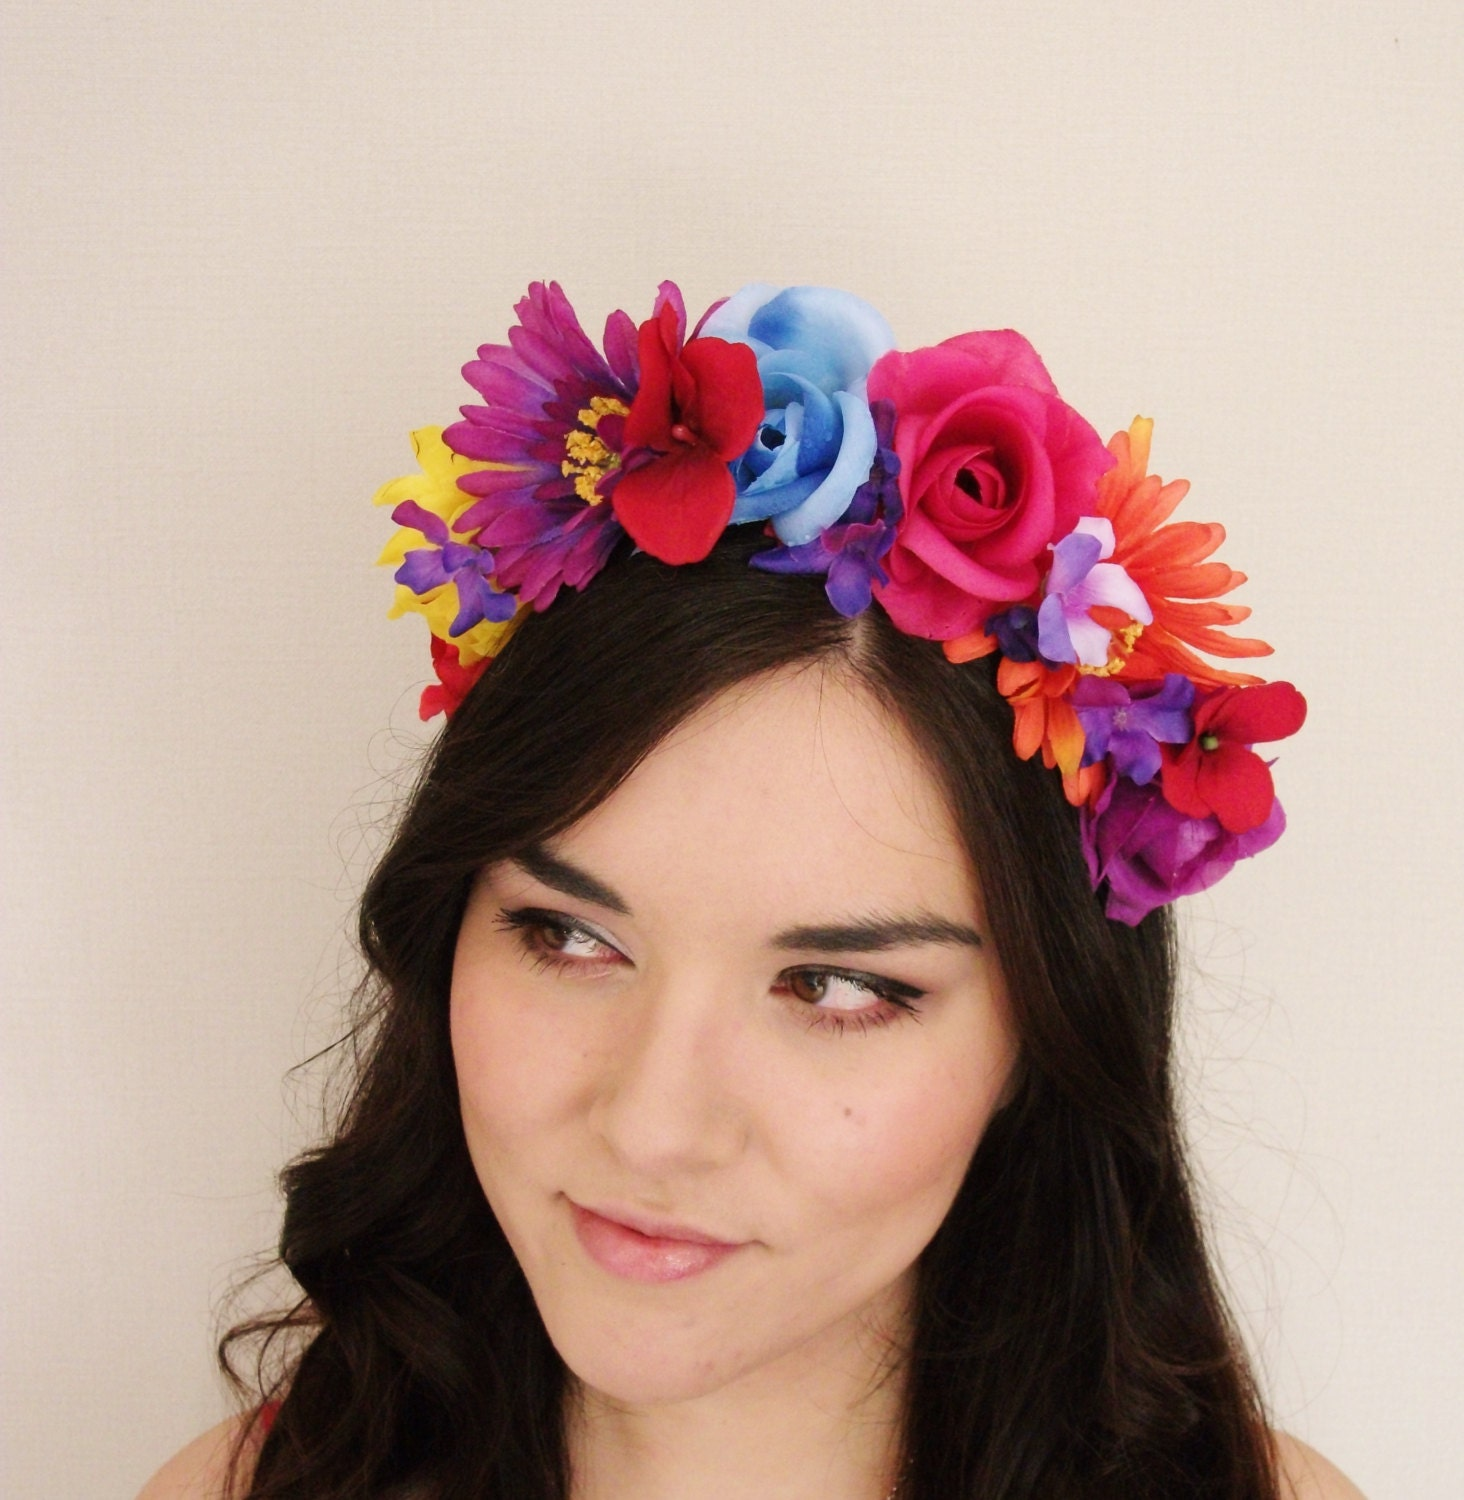 Mexican Rose Flower Crown Purple Pink Blue by MissWildFlowers